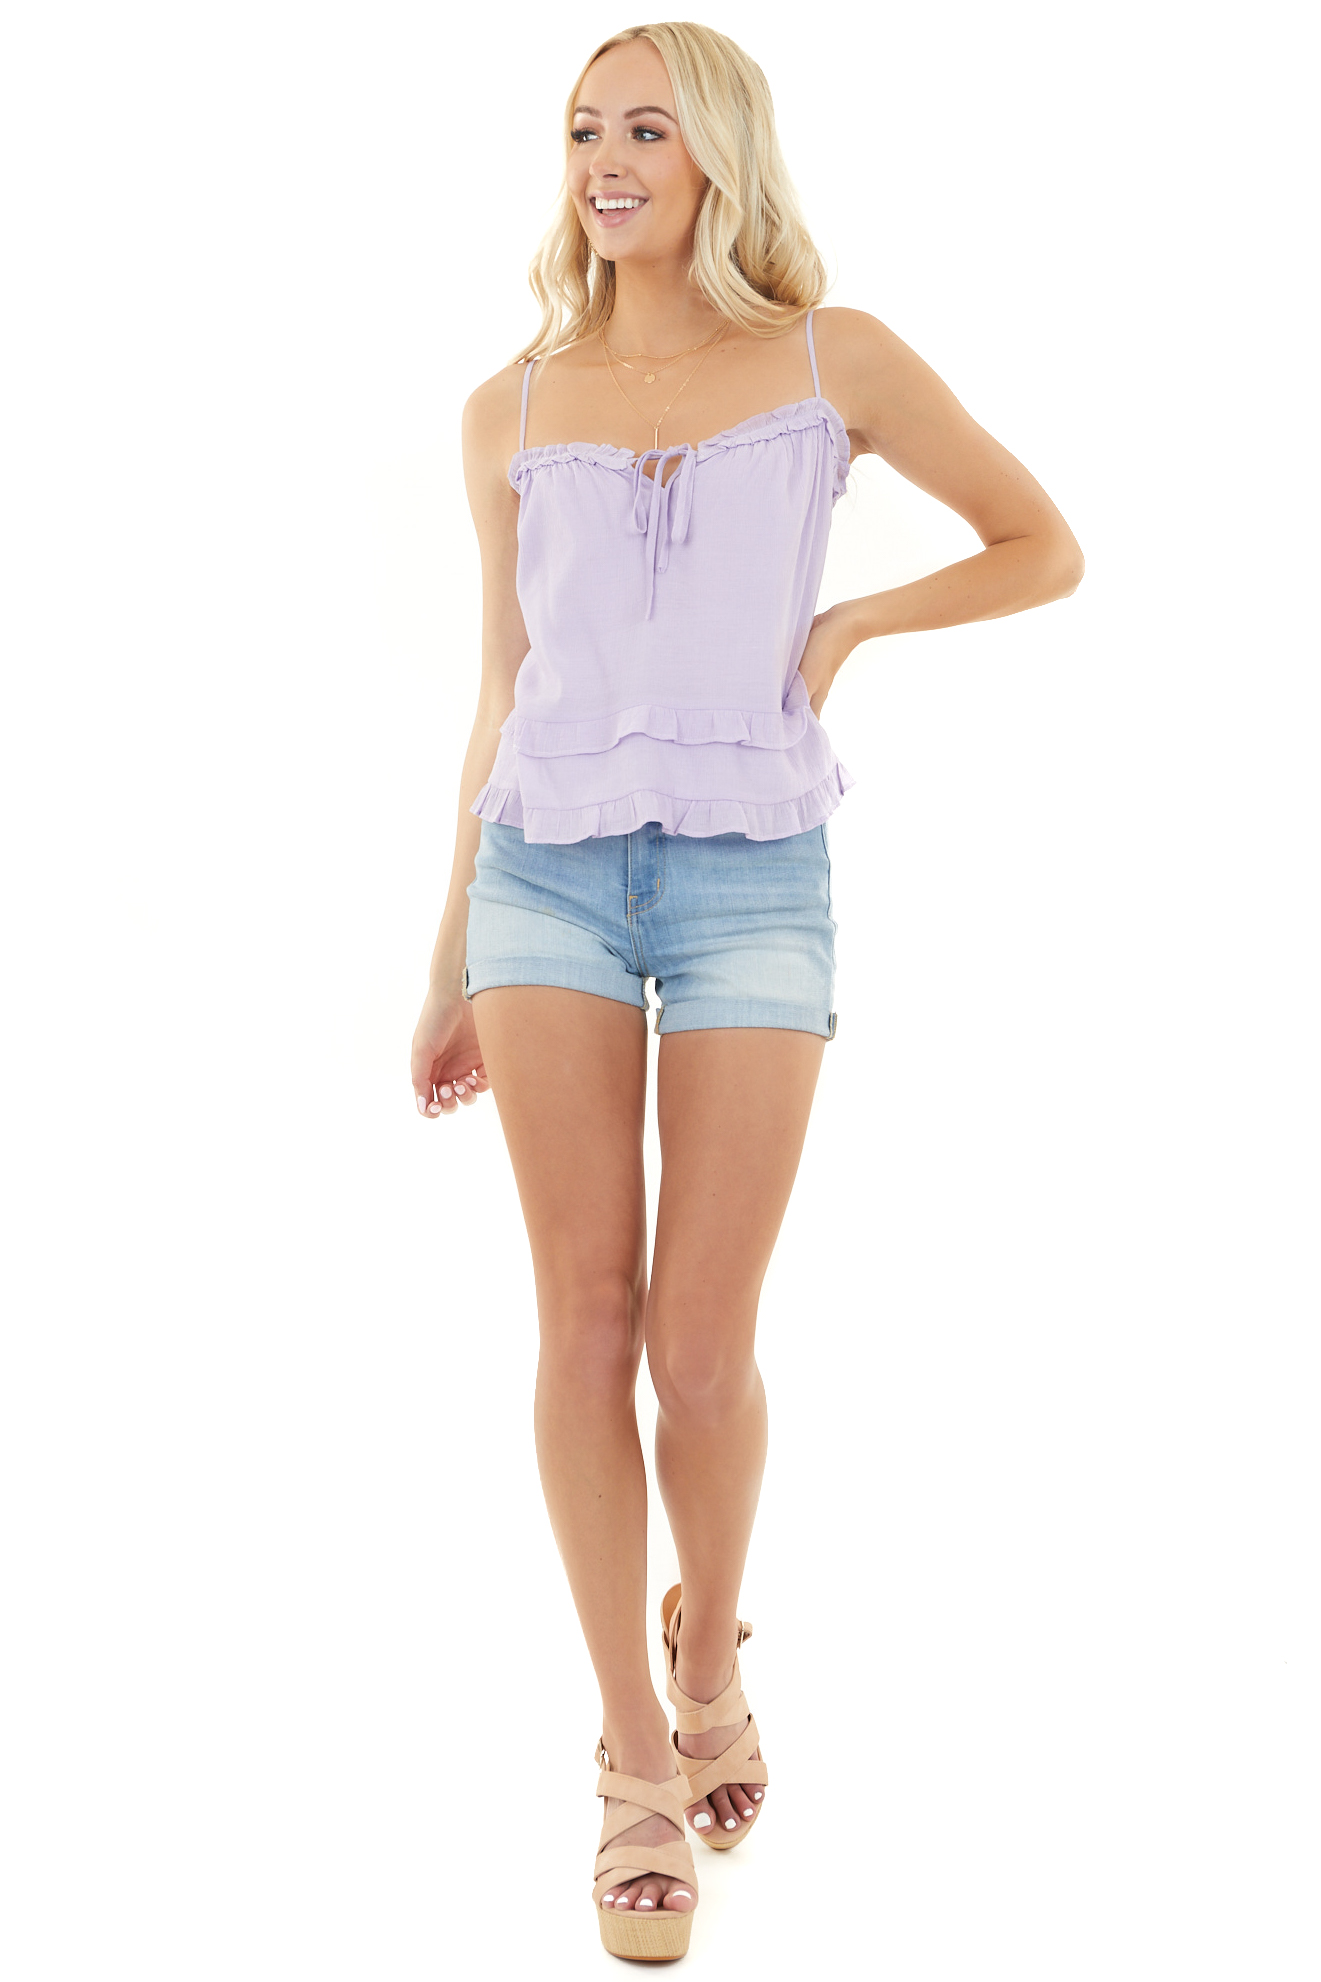 Lilac Sleeveless Woven Top with Bust Tie and Ruffle Details